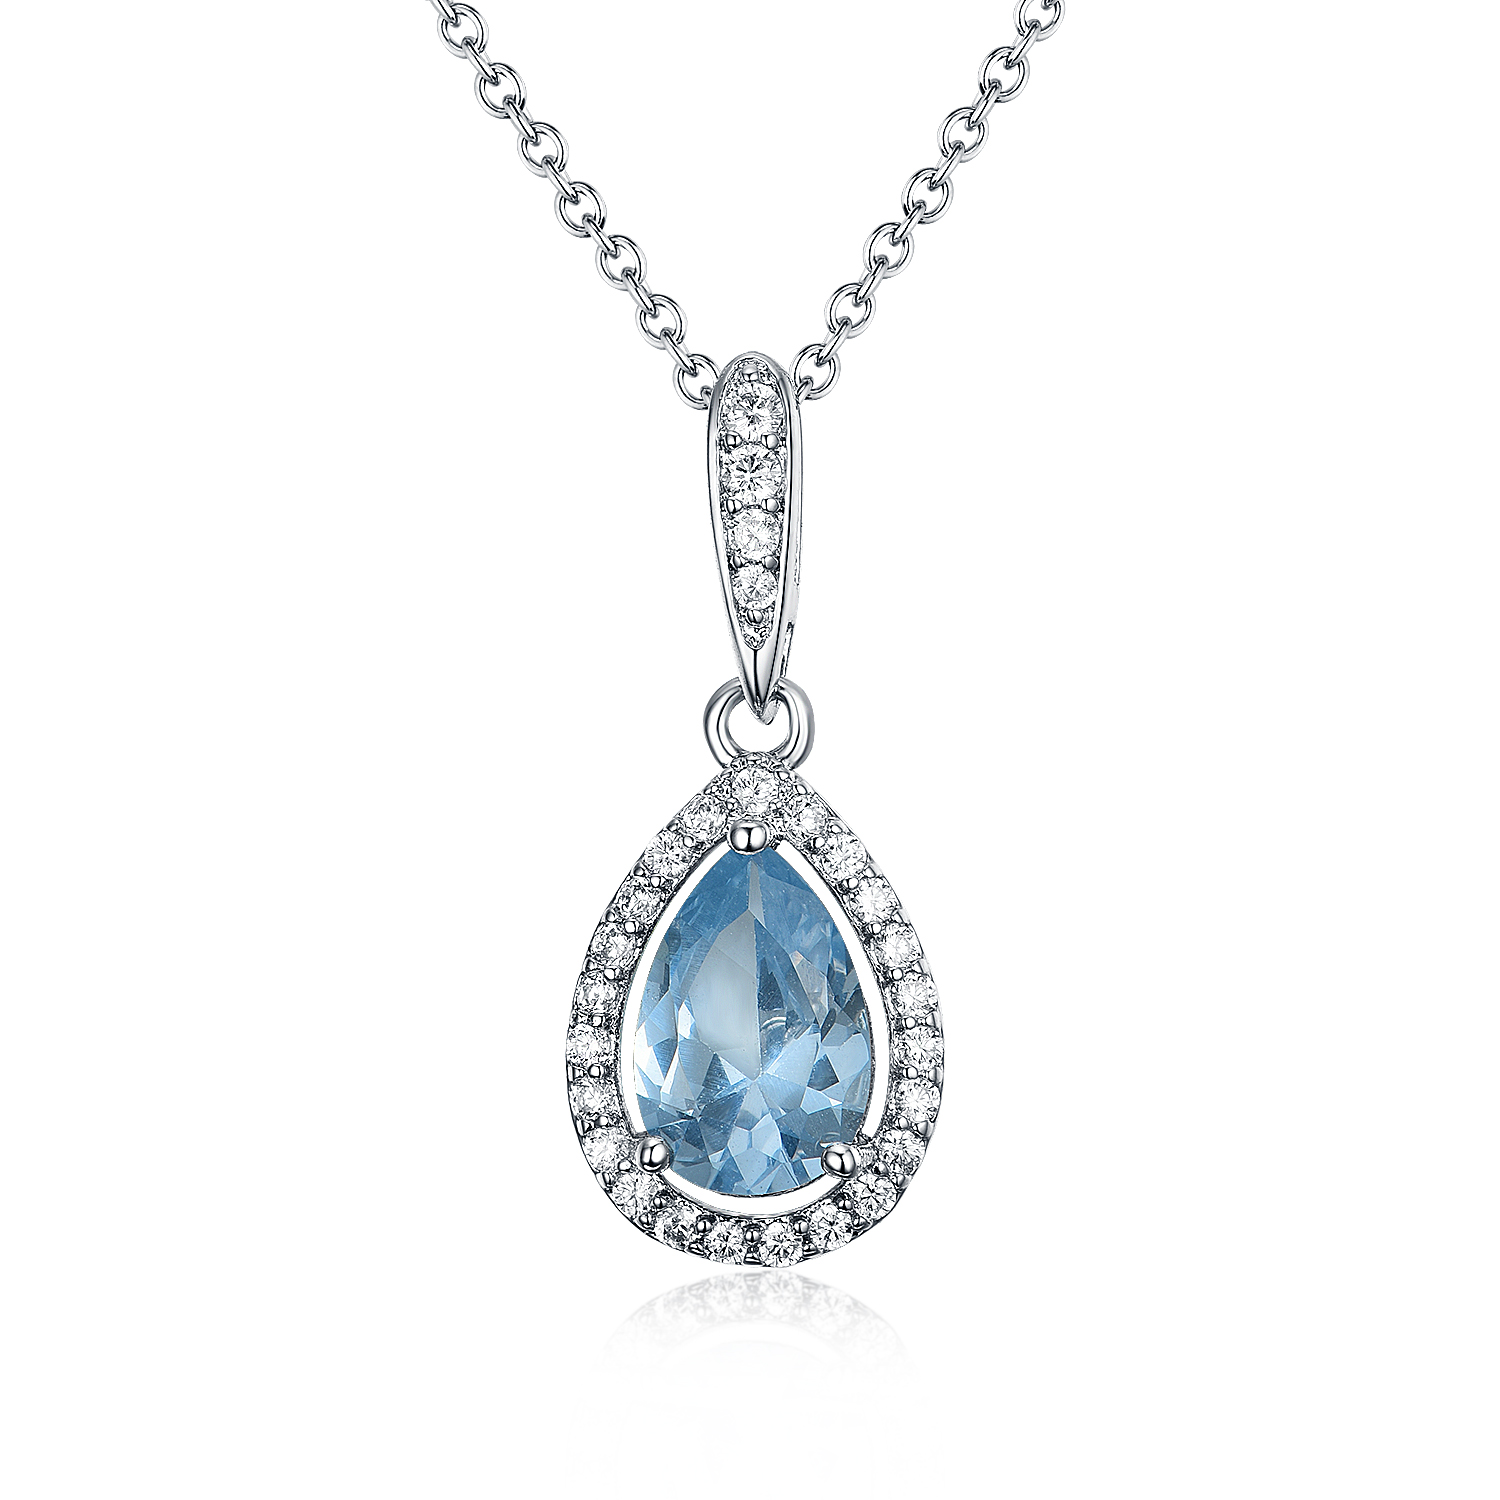 ST2728 Pear shape Aquamarine Spinel with small White CZ surrounded Earring/Pendant/Ring Set with Rhodium plating in Sterling Silver from China Top Jewelry exporter